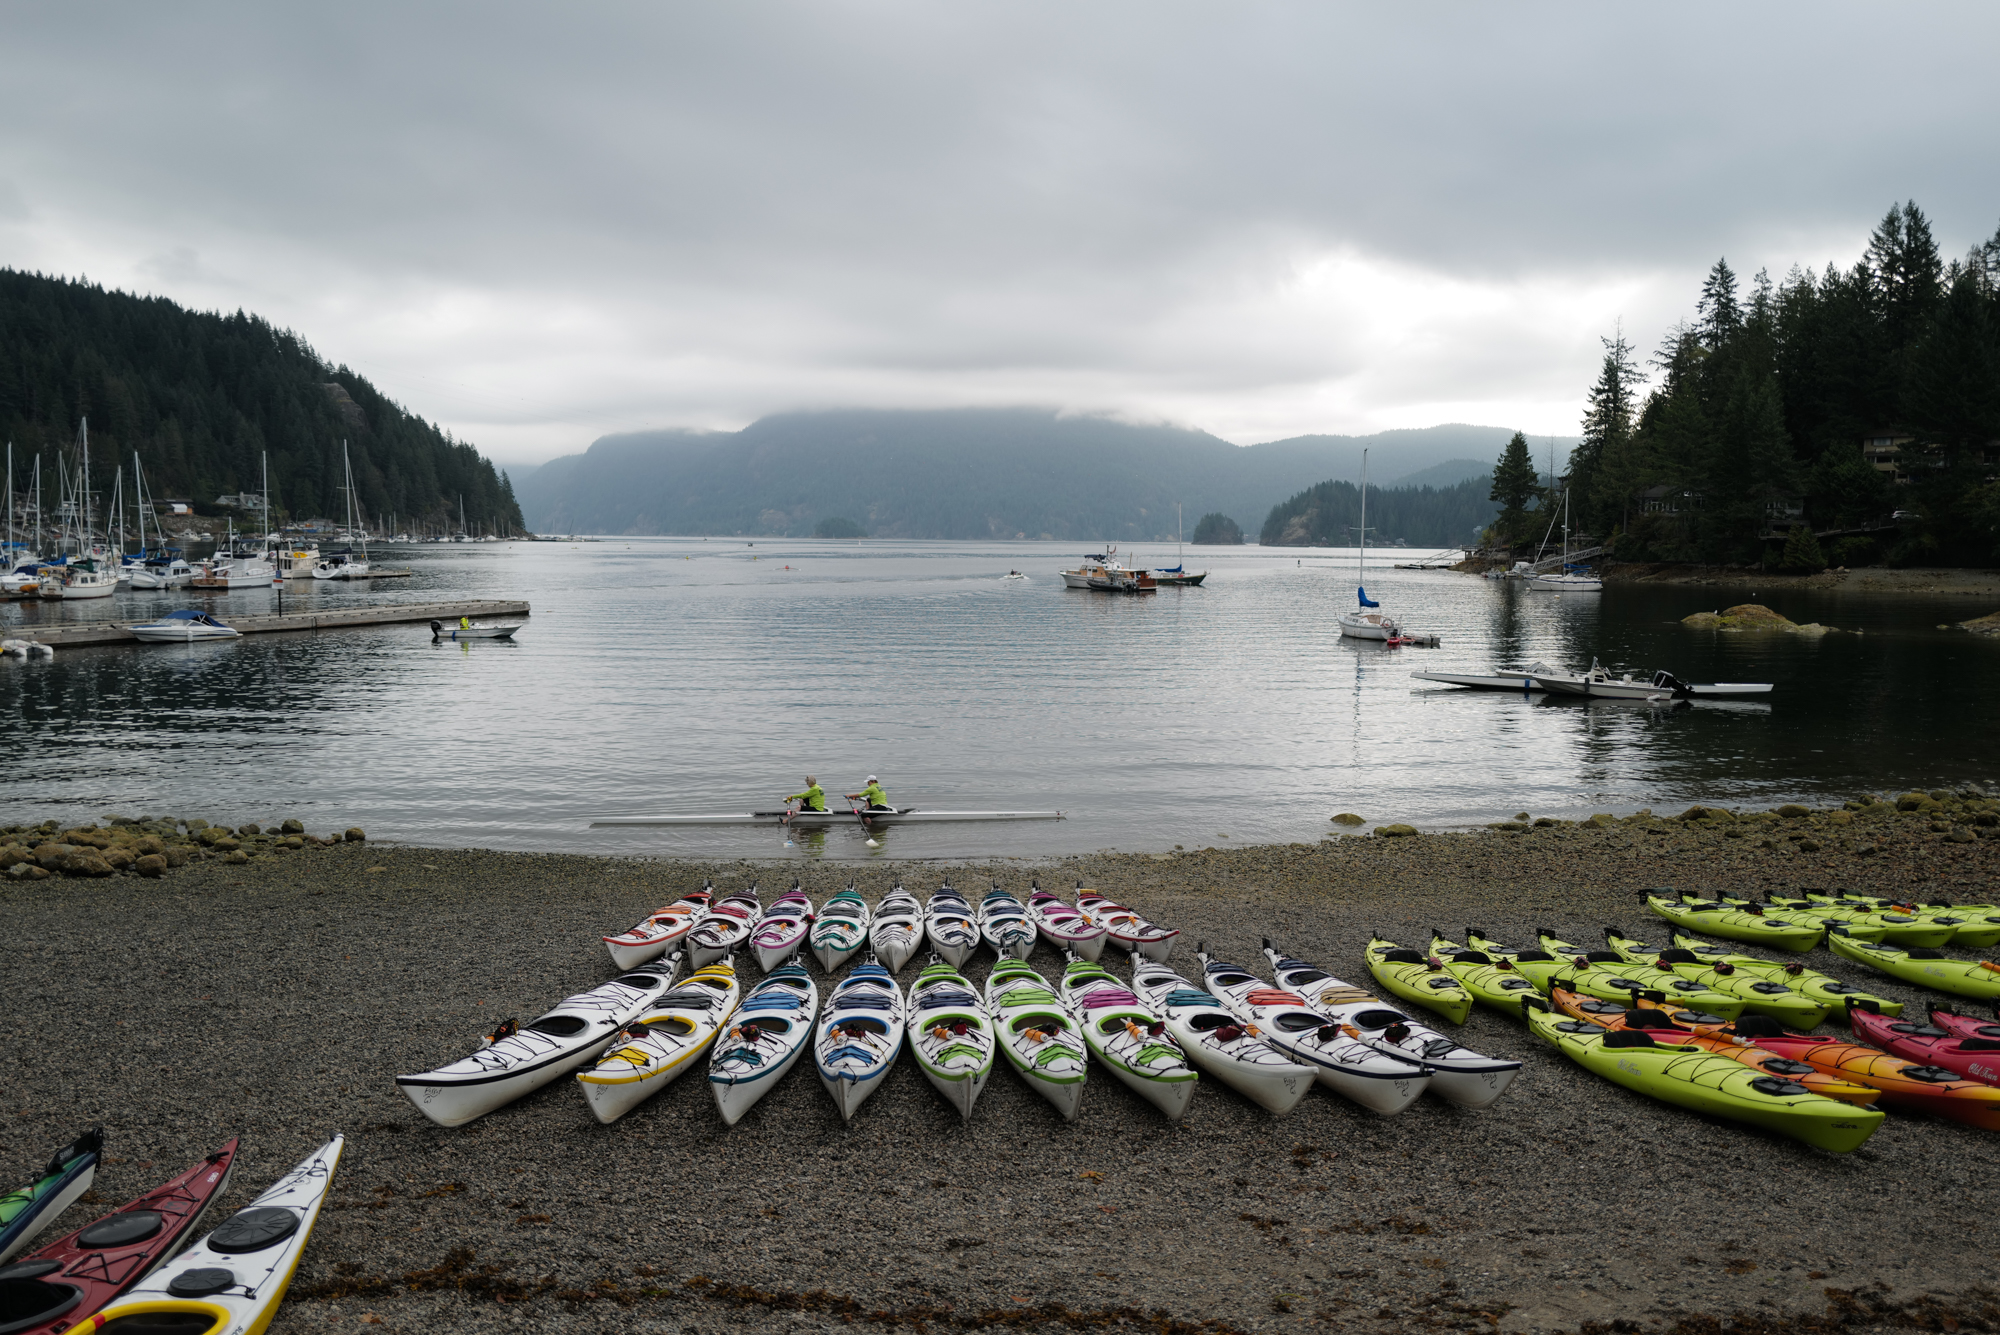 Kayaks for rent at Deep Cove Kayak